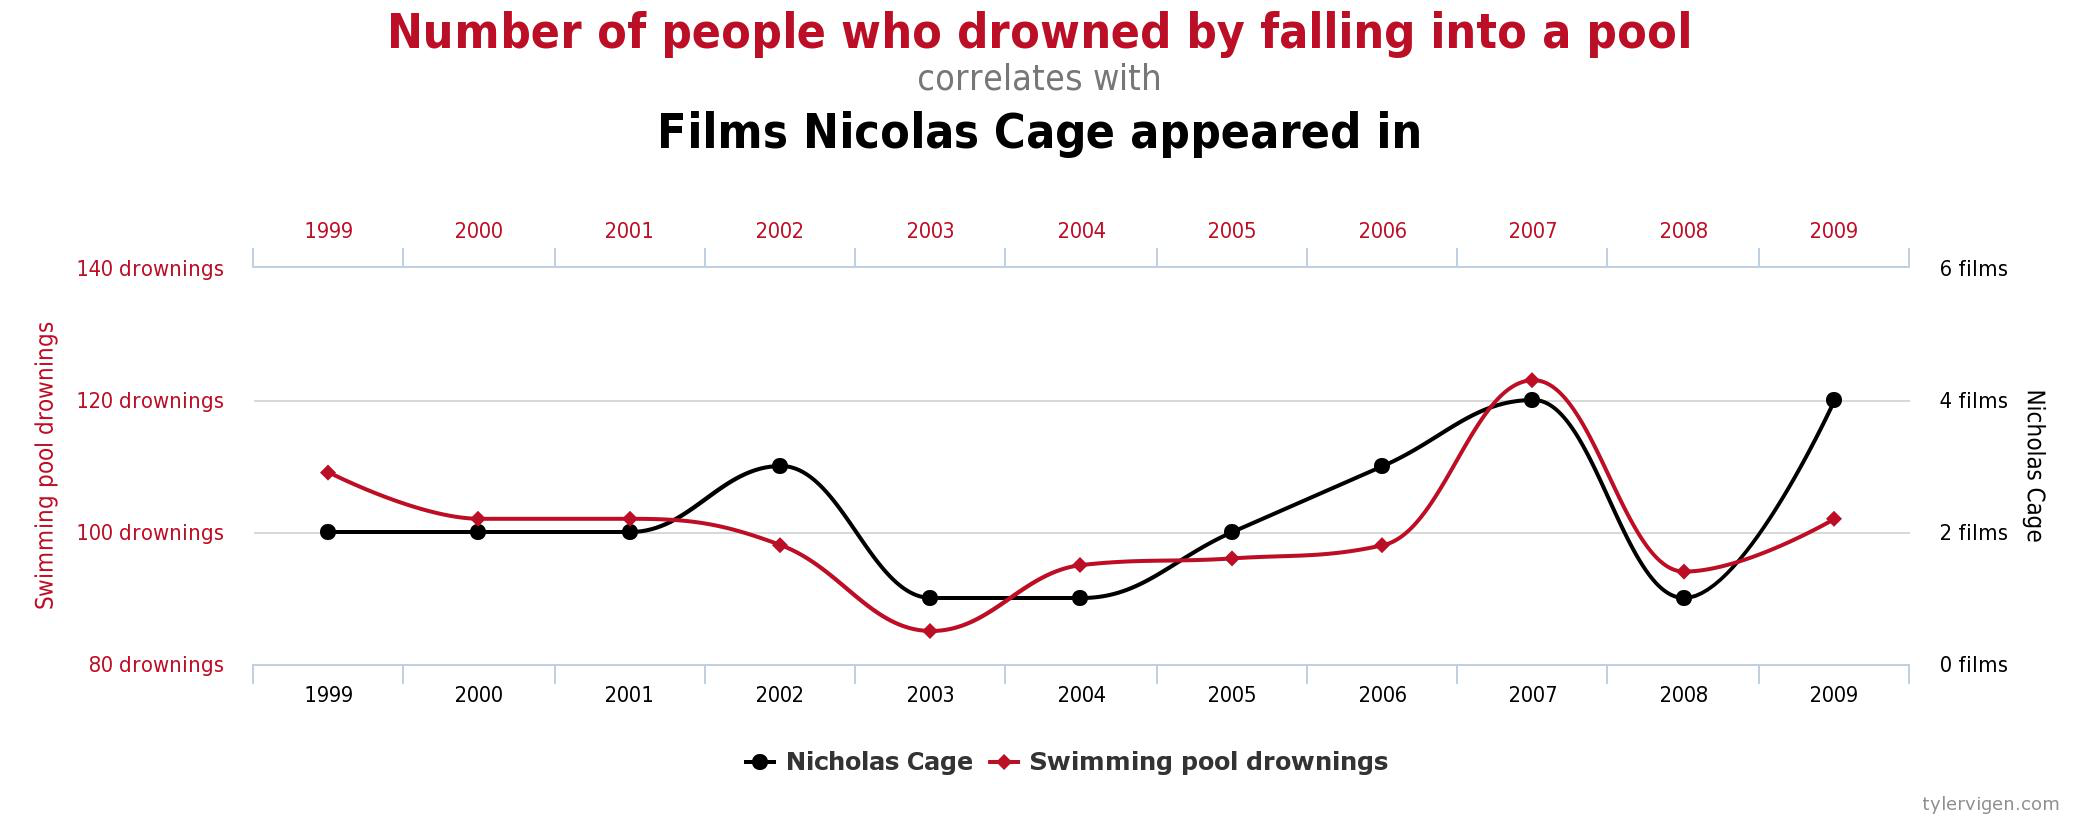 Correlation Does Not Imply Causation But Then What Does It Mean